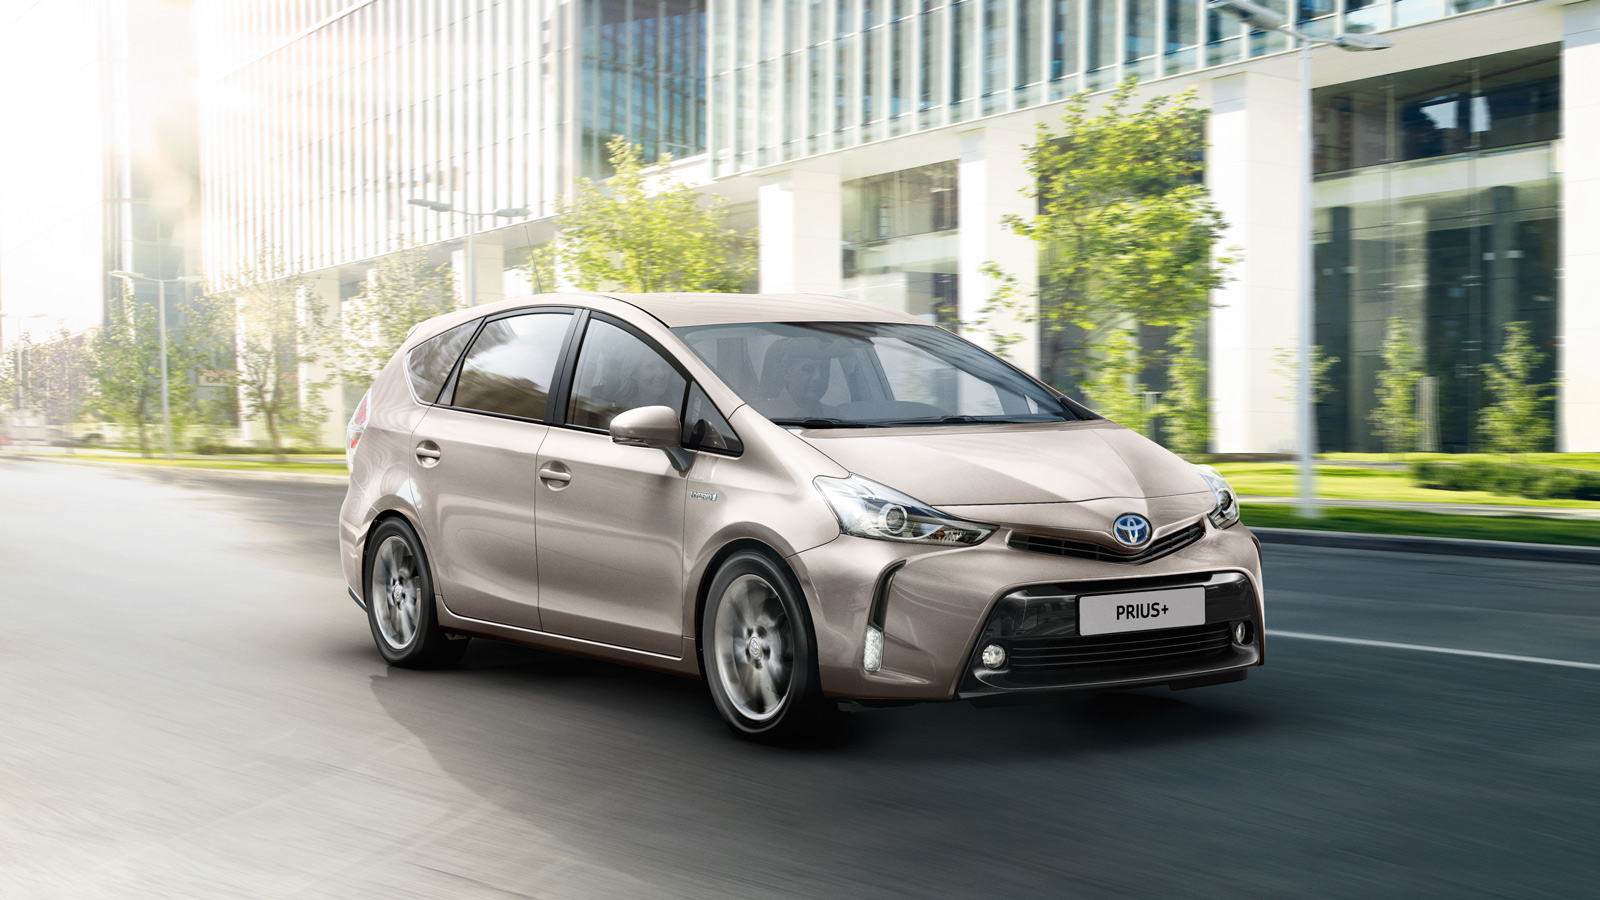 Toyota Prius Plus, exterior Beige, side front view, driving shot in city background